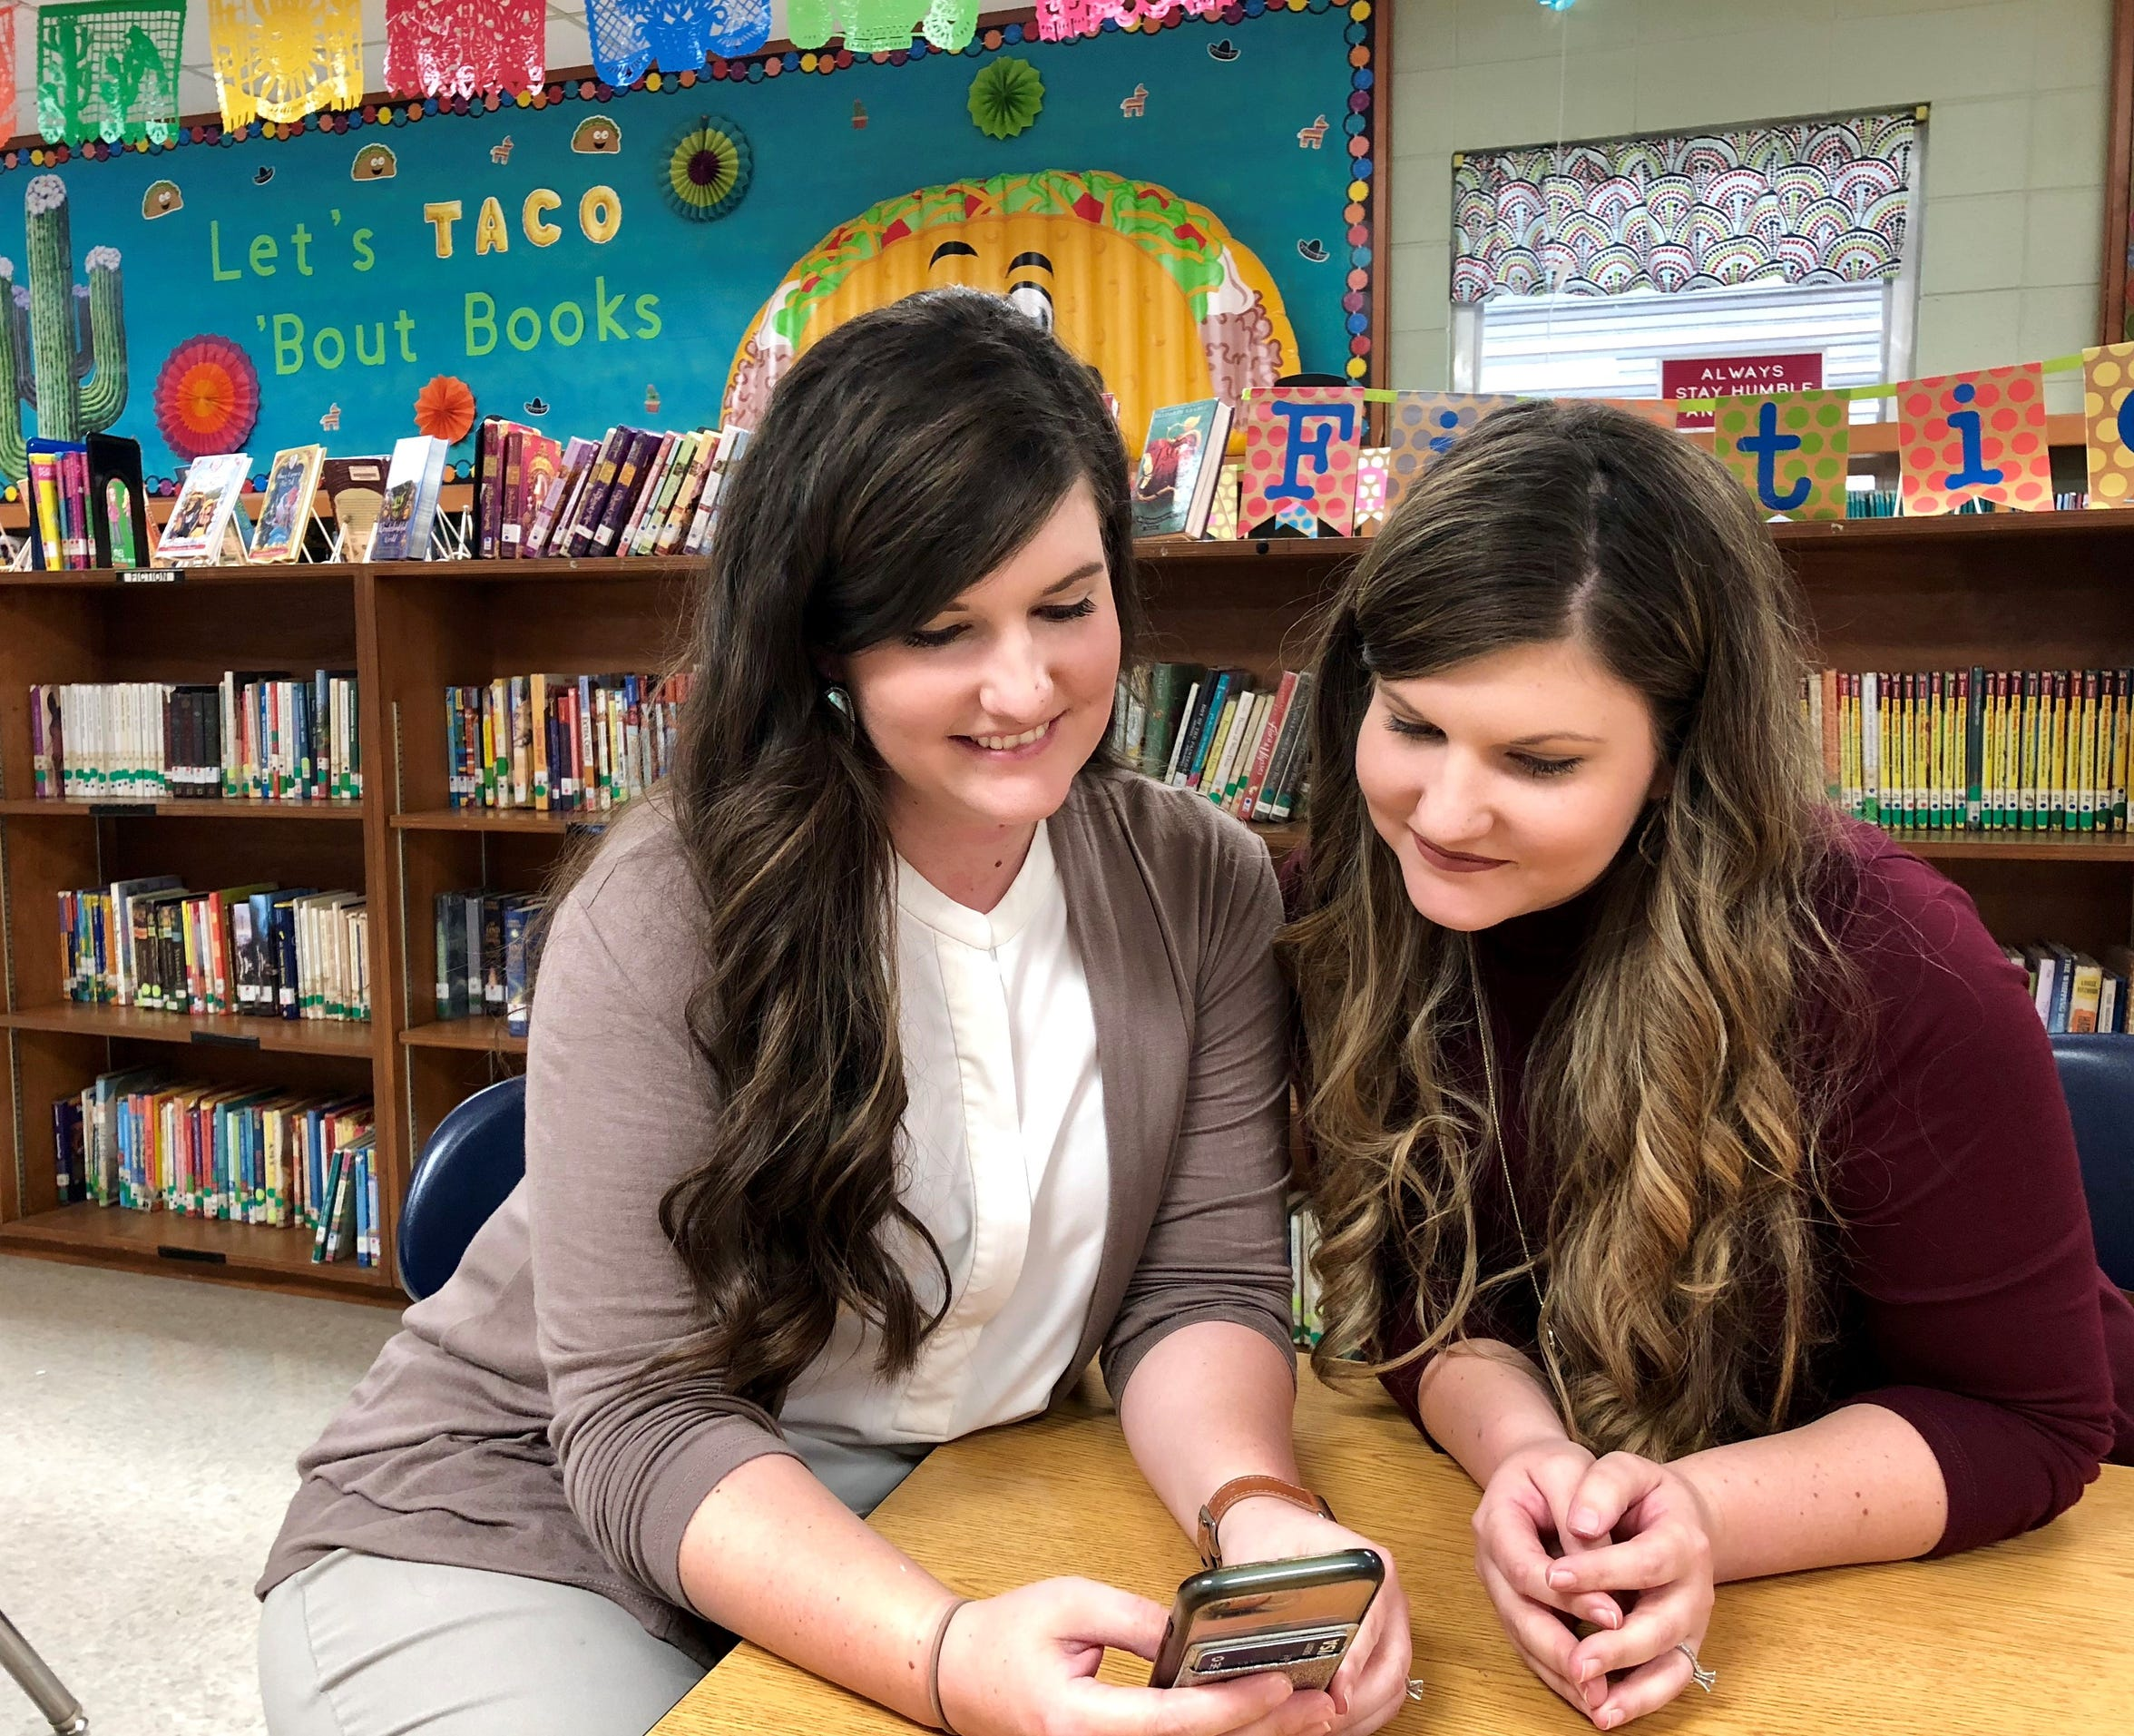 Twin sisters Megan Mercado and Taylor Wallace teach gifted at Woodvale Elementary School in Lafayette, Louisiana, their alma mater. They run an Instagram account and Facebook page called Double Duty Teachers to share tips, projects and other teaching experiences.